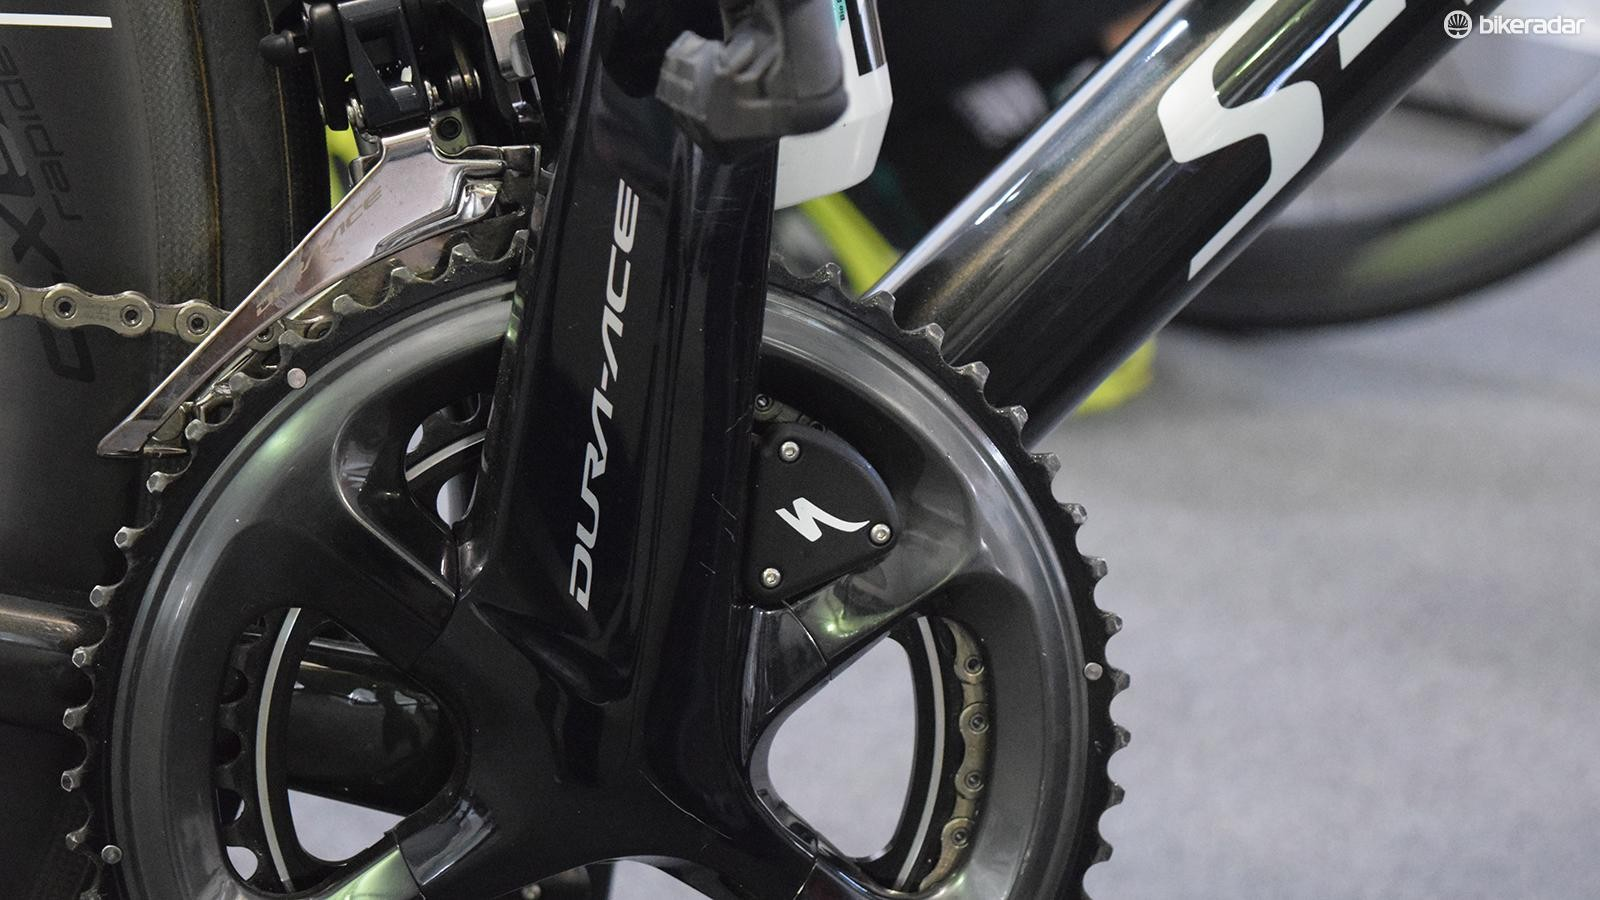 The power meter is decorated with the iconic S from Specialized